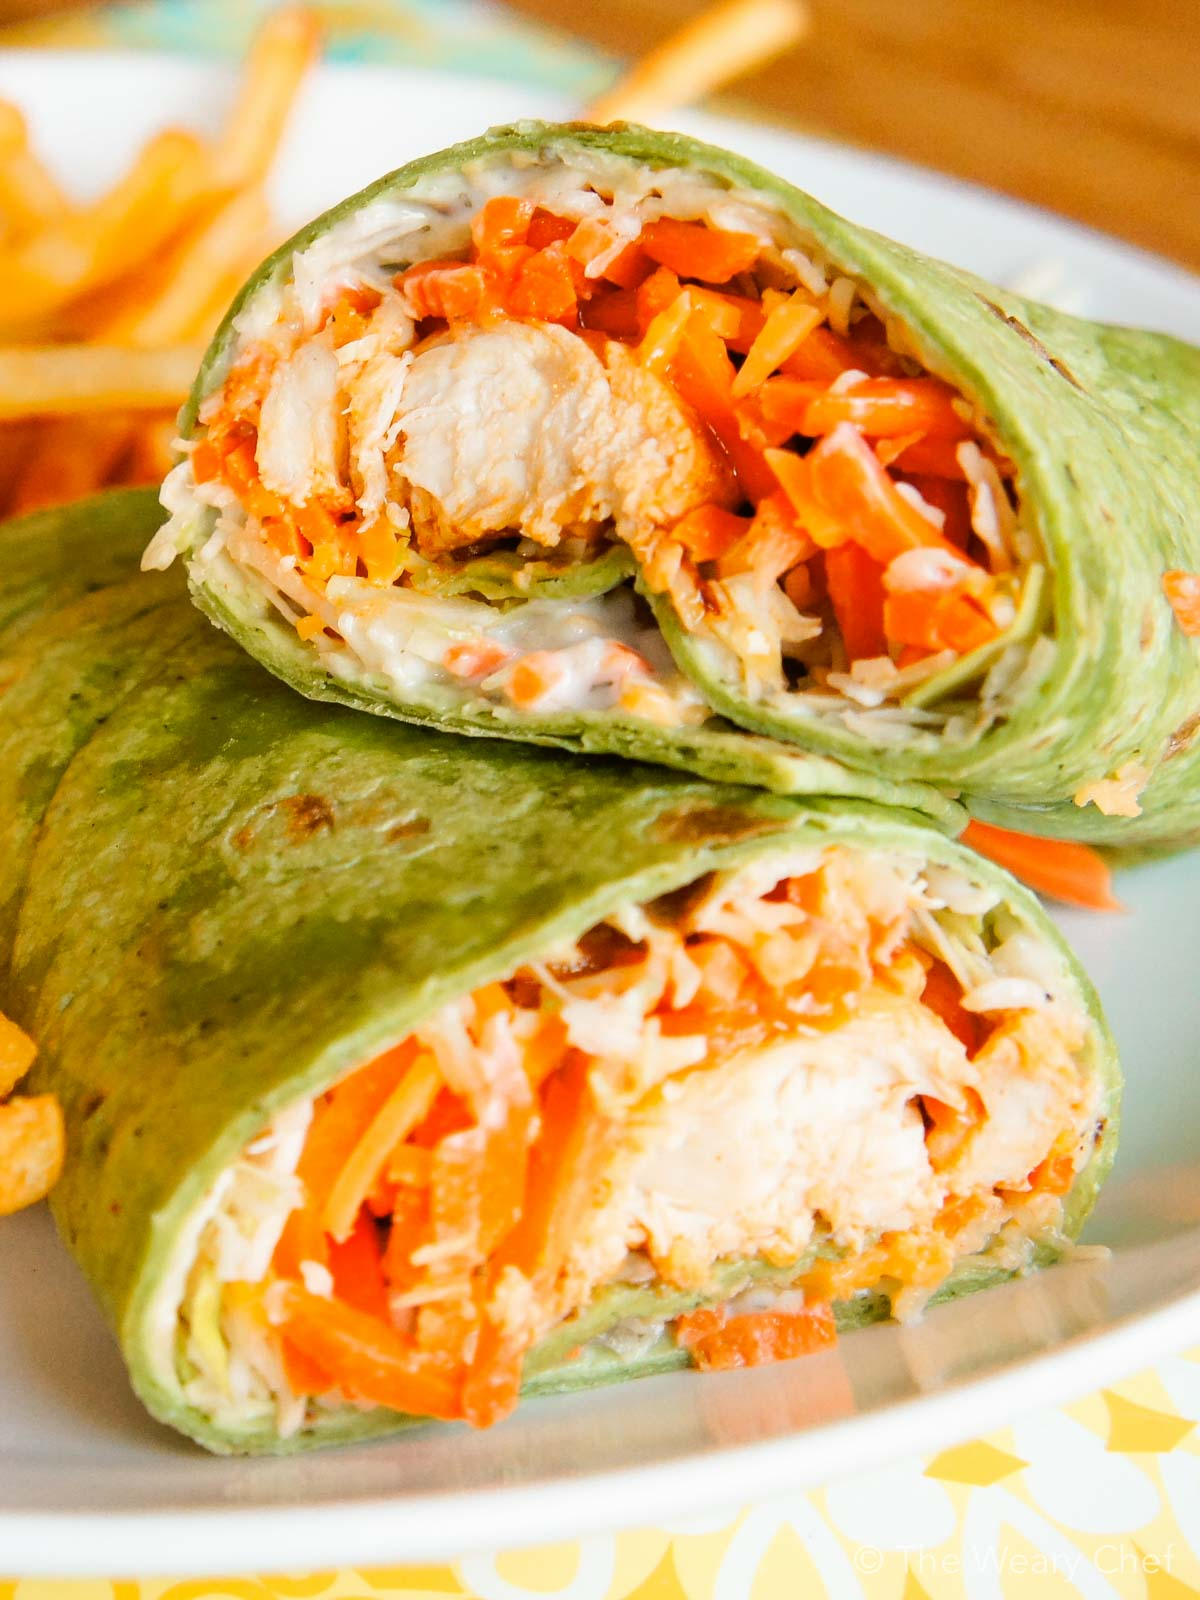 These easy Buffalo Chicken Wraps come together quickly and will please the whole family! & Buffalo Chicken Wraps: A fun and tasty dinner idea! - The Weary Chef